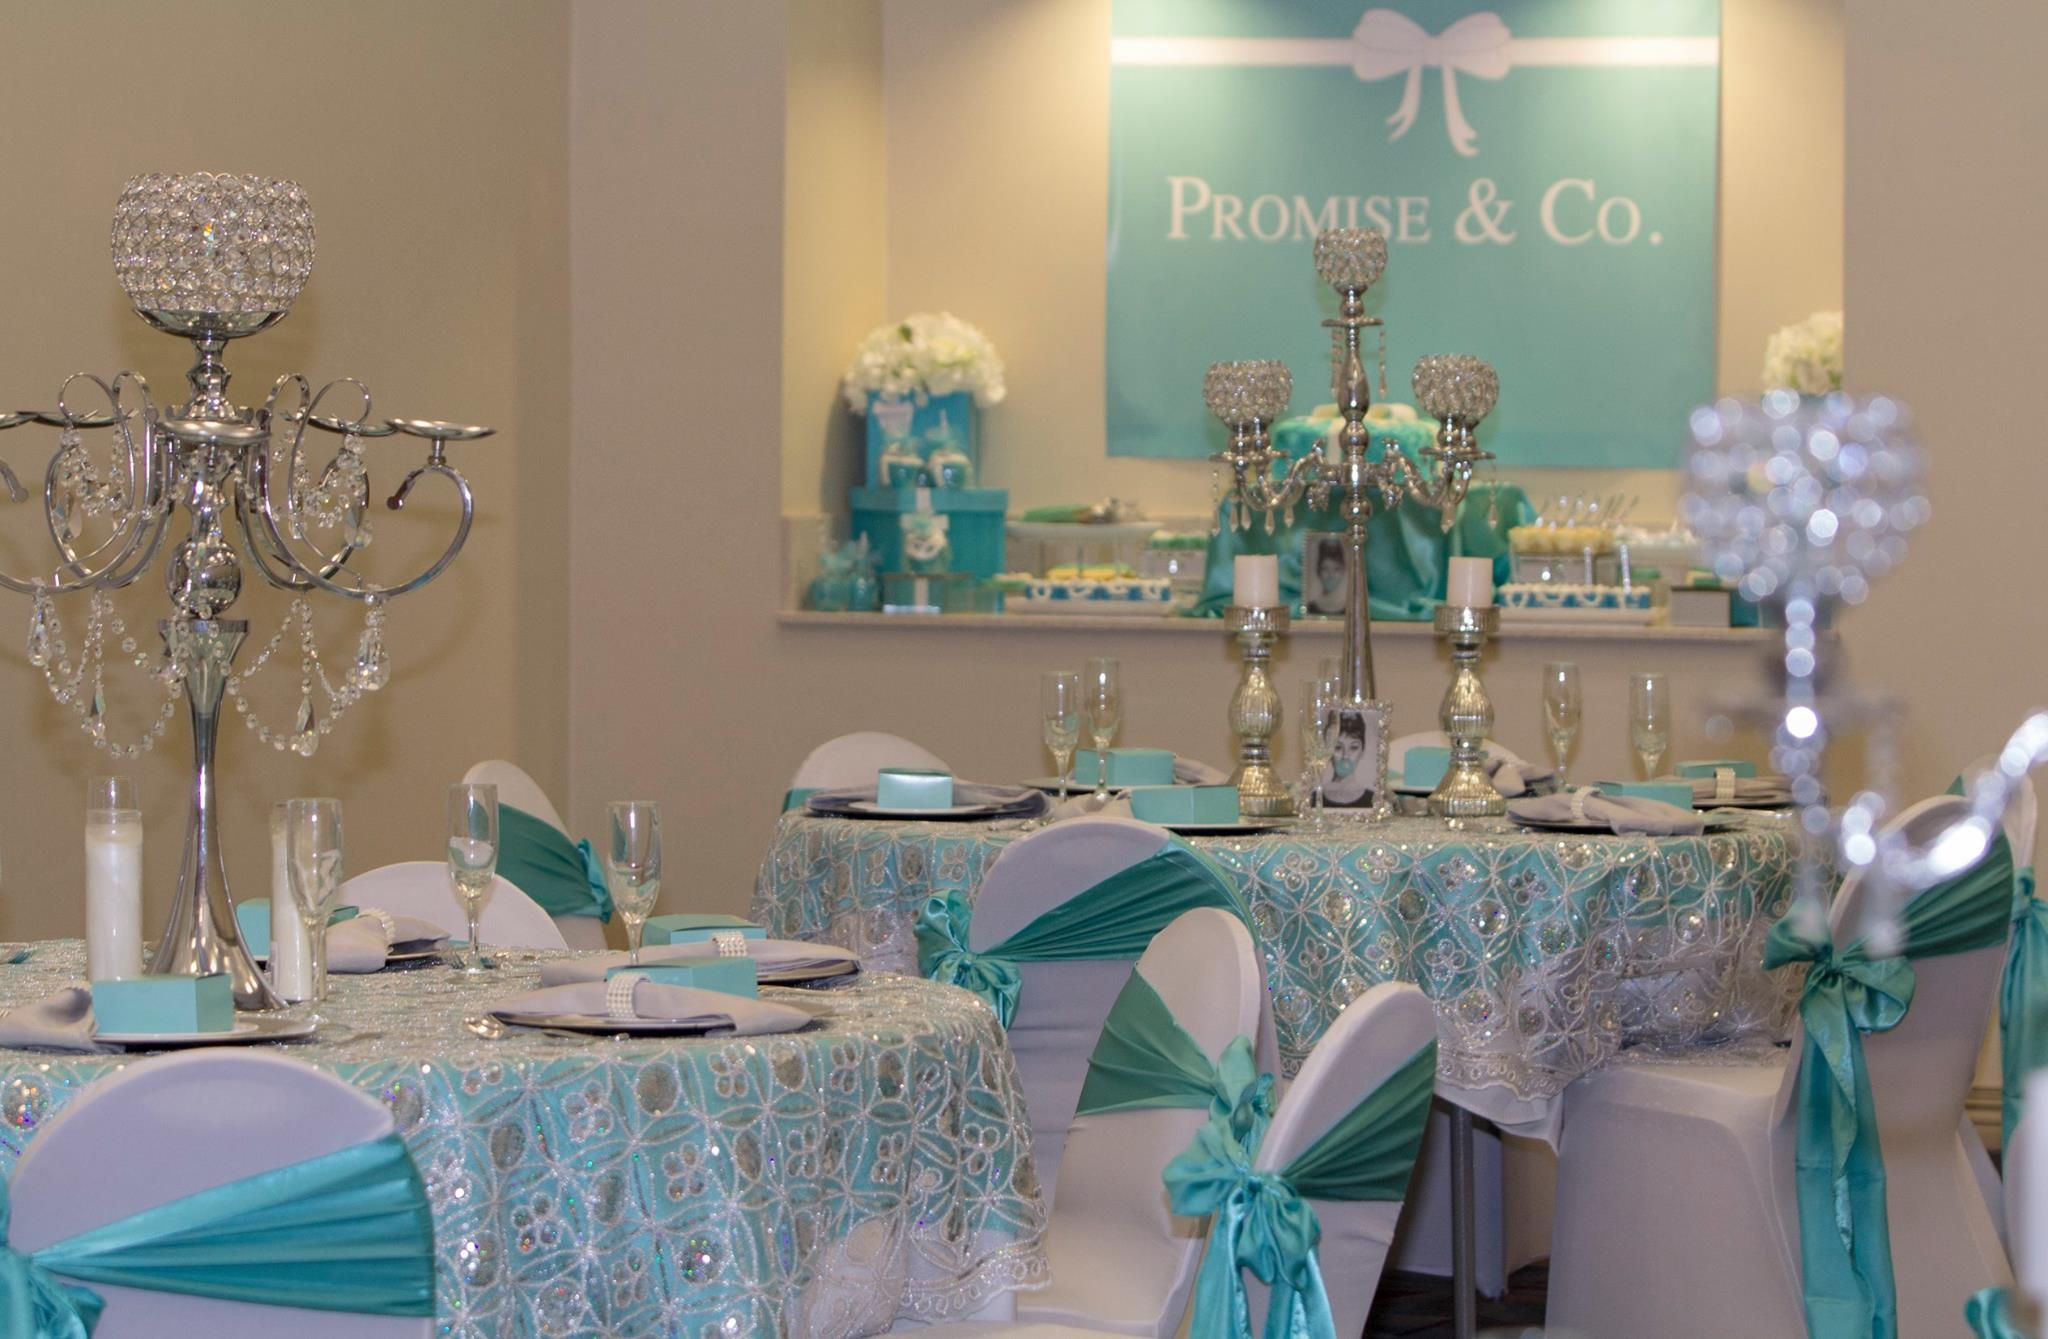 e6482ed2354a Do you have a bridal shower to plan and need some ideas  Call us at  706-854-4728 to see how we can help make your dream event a reality.